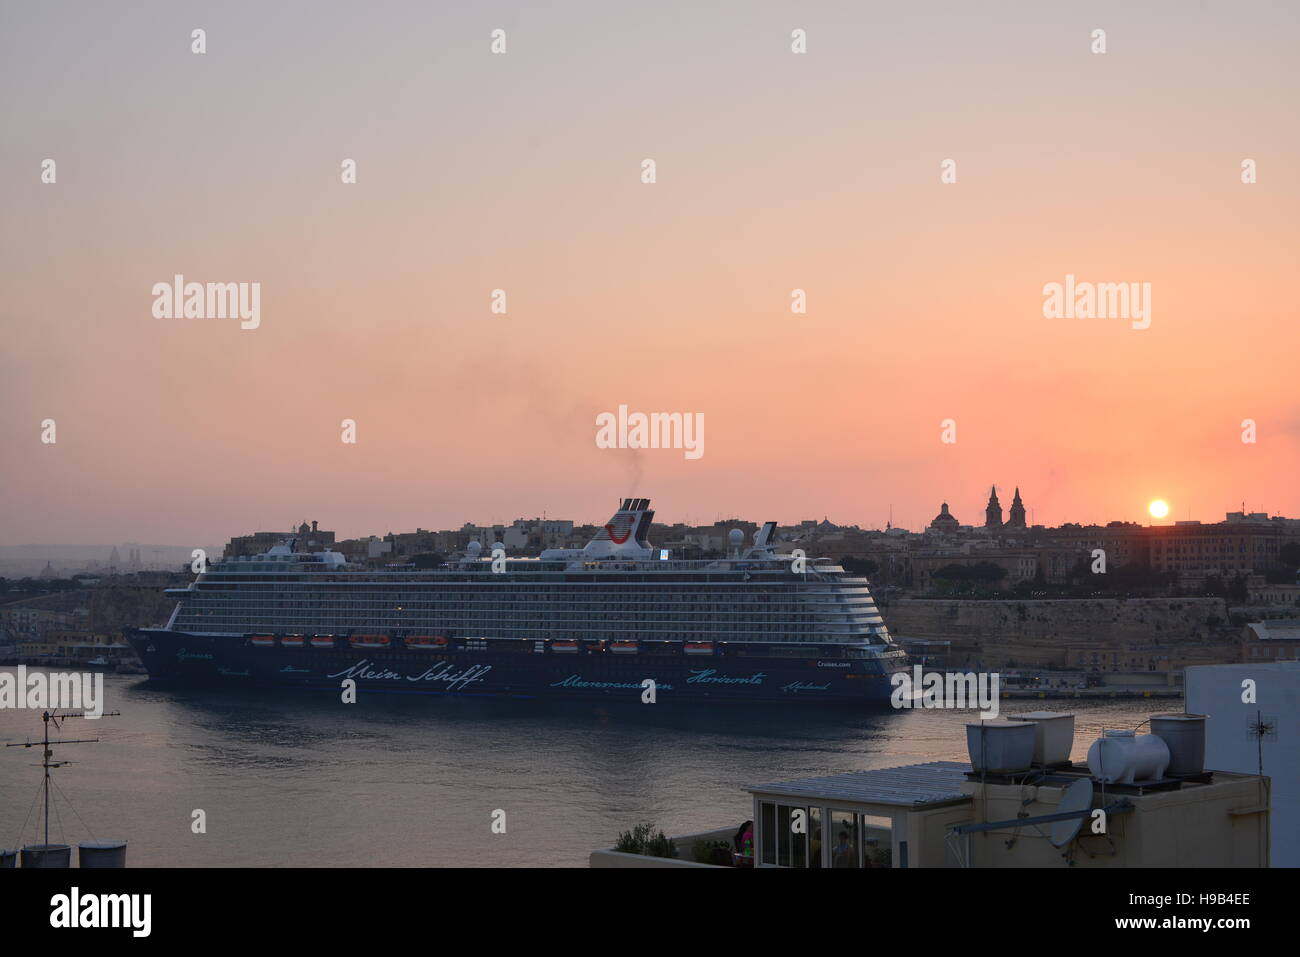 The Mein Schiff 3 cruise ship, operated by TUI, berthed in the Grand Harbour in Malta at sunset - Stock Image